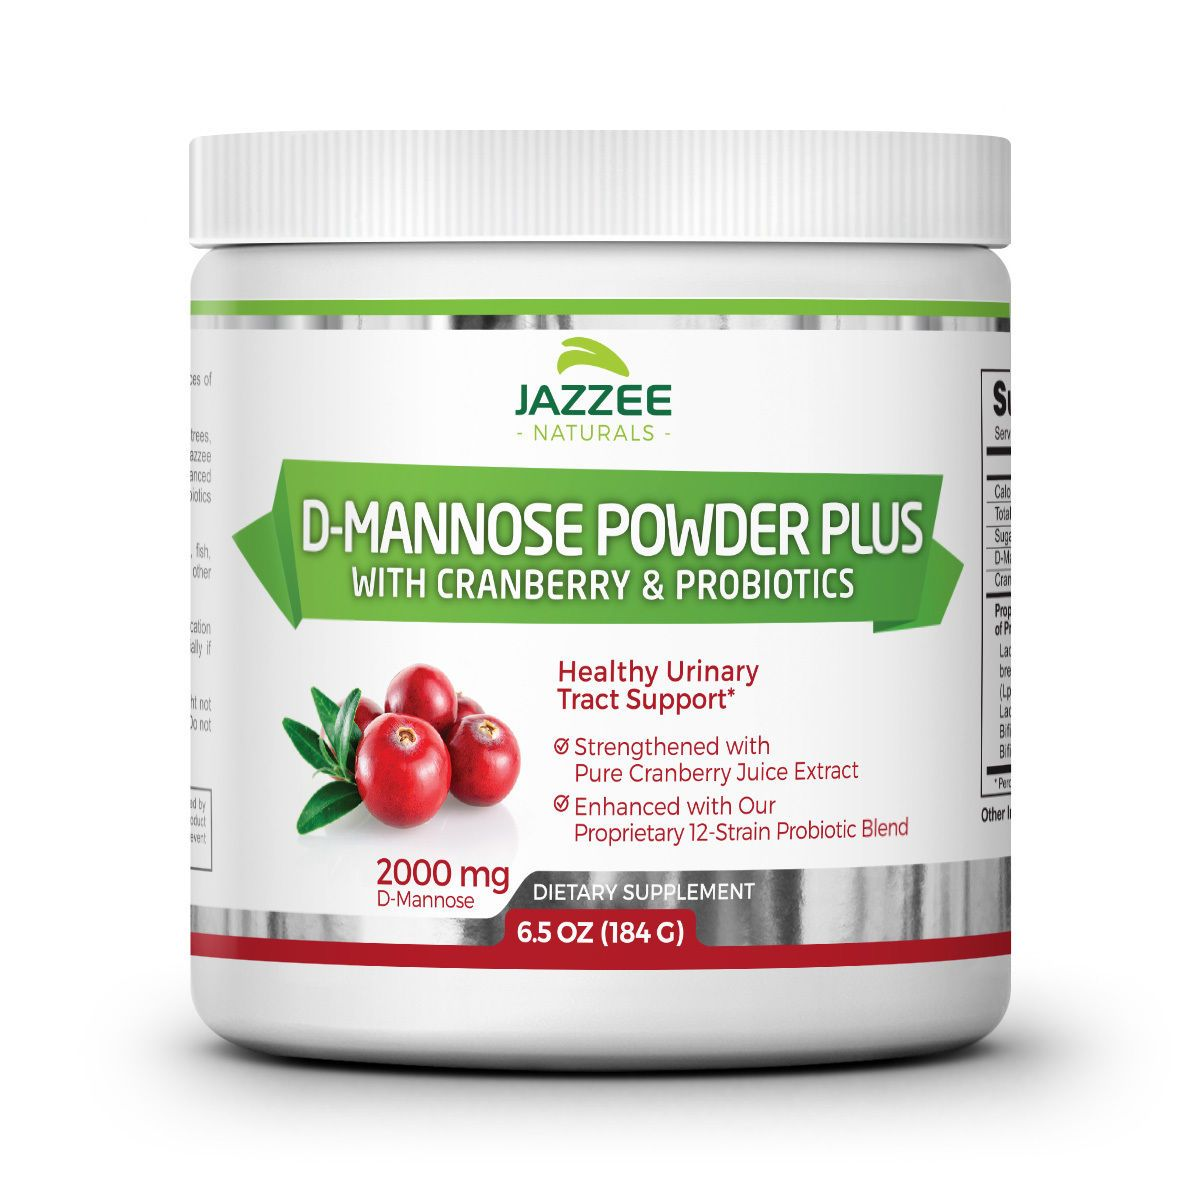 Jazzee Naturals Body Powder Health Beauty Pure Cranberry Juice